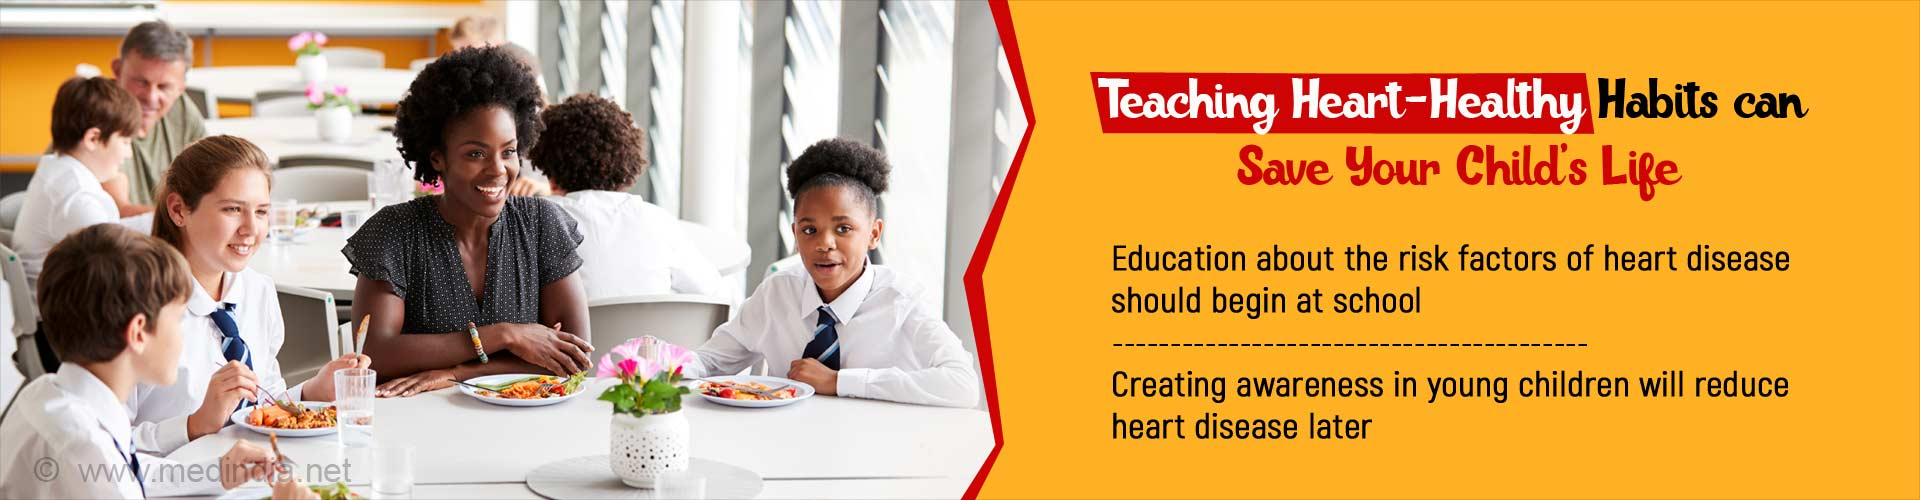 Promote Heart-Healthy Lifestyle in Schools can Prevent Cardiovascular Deaths